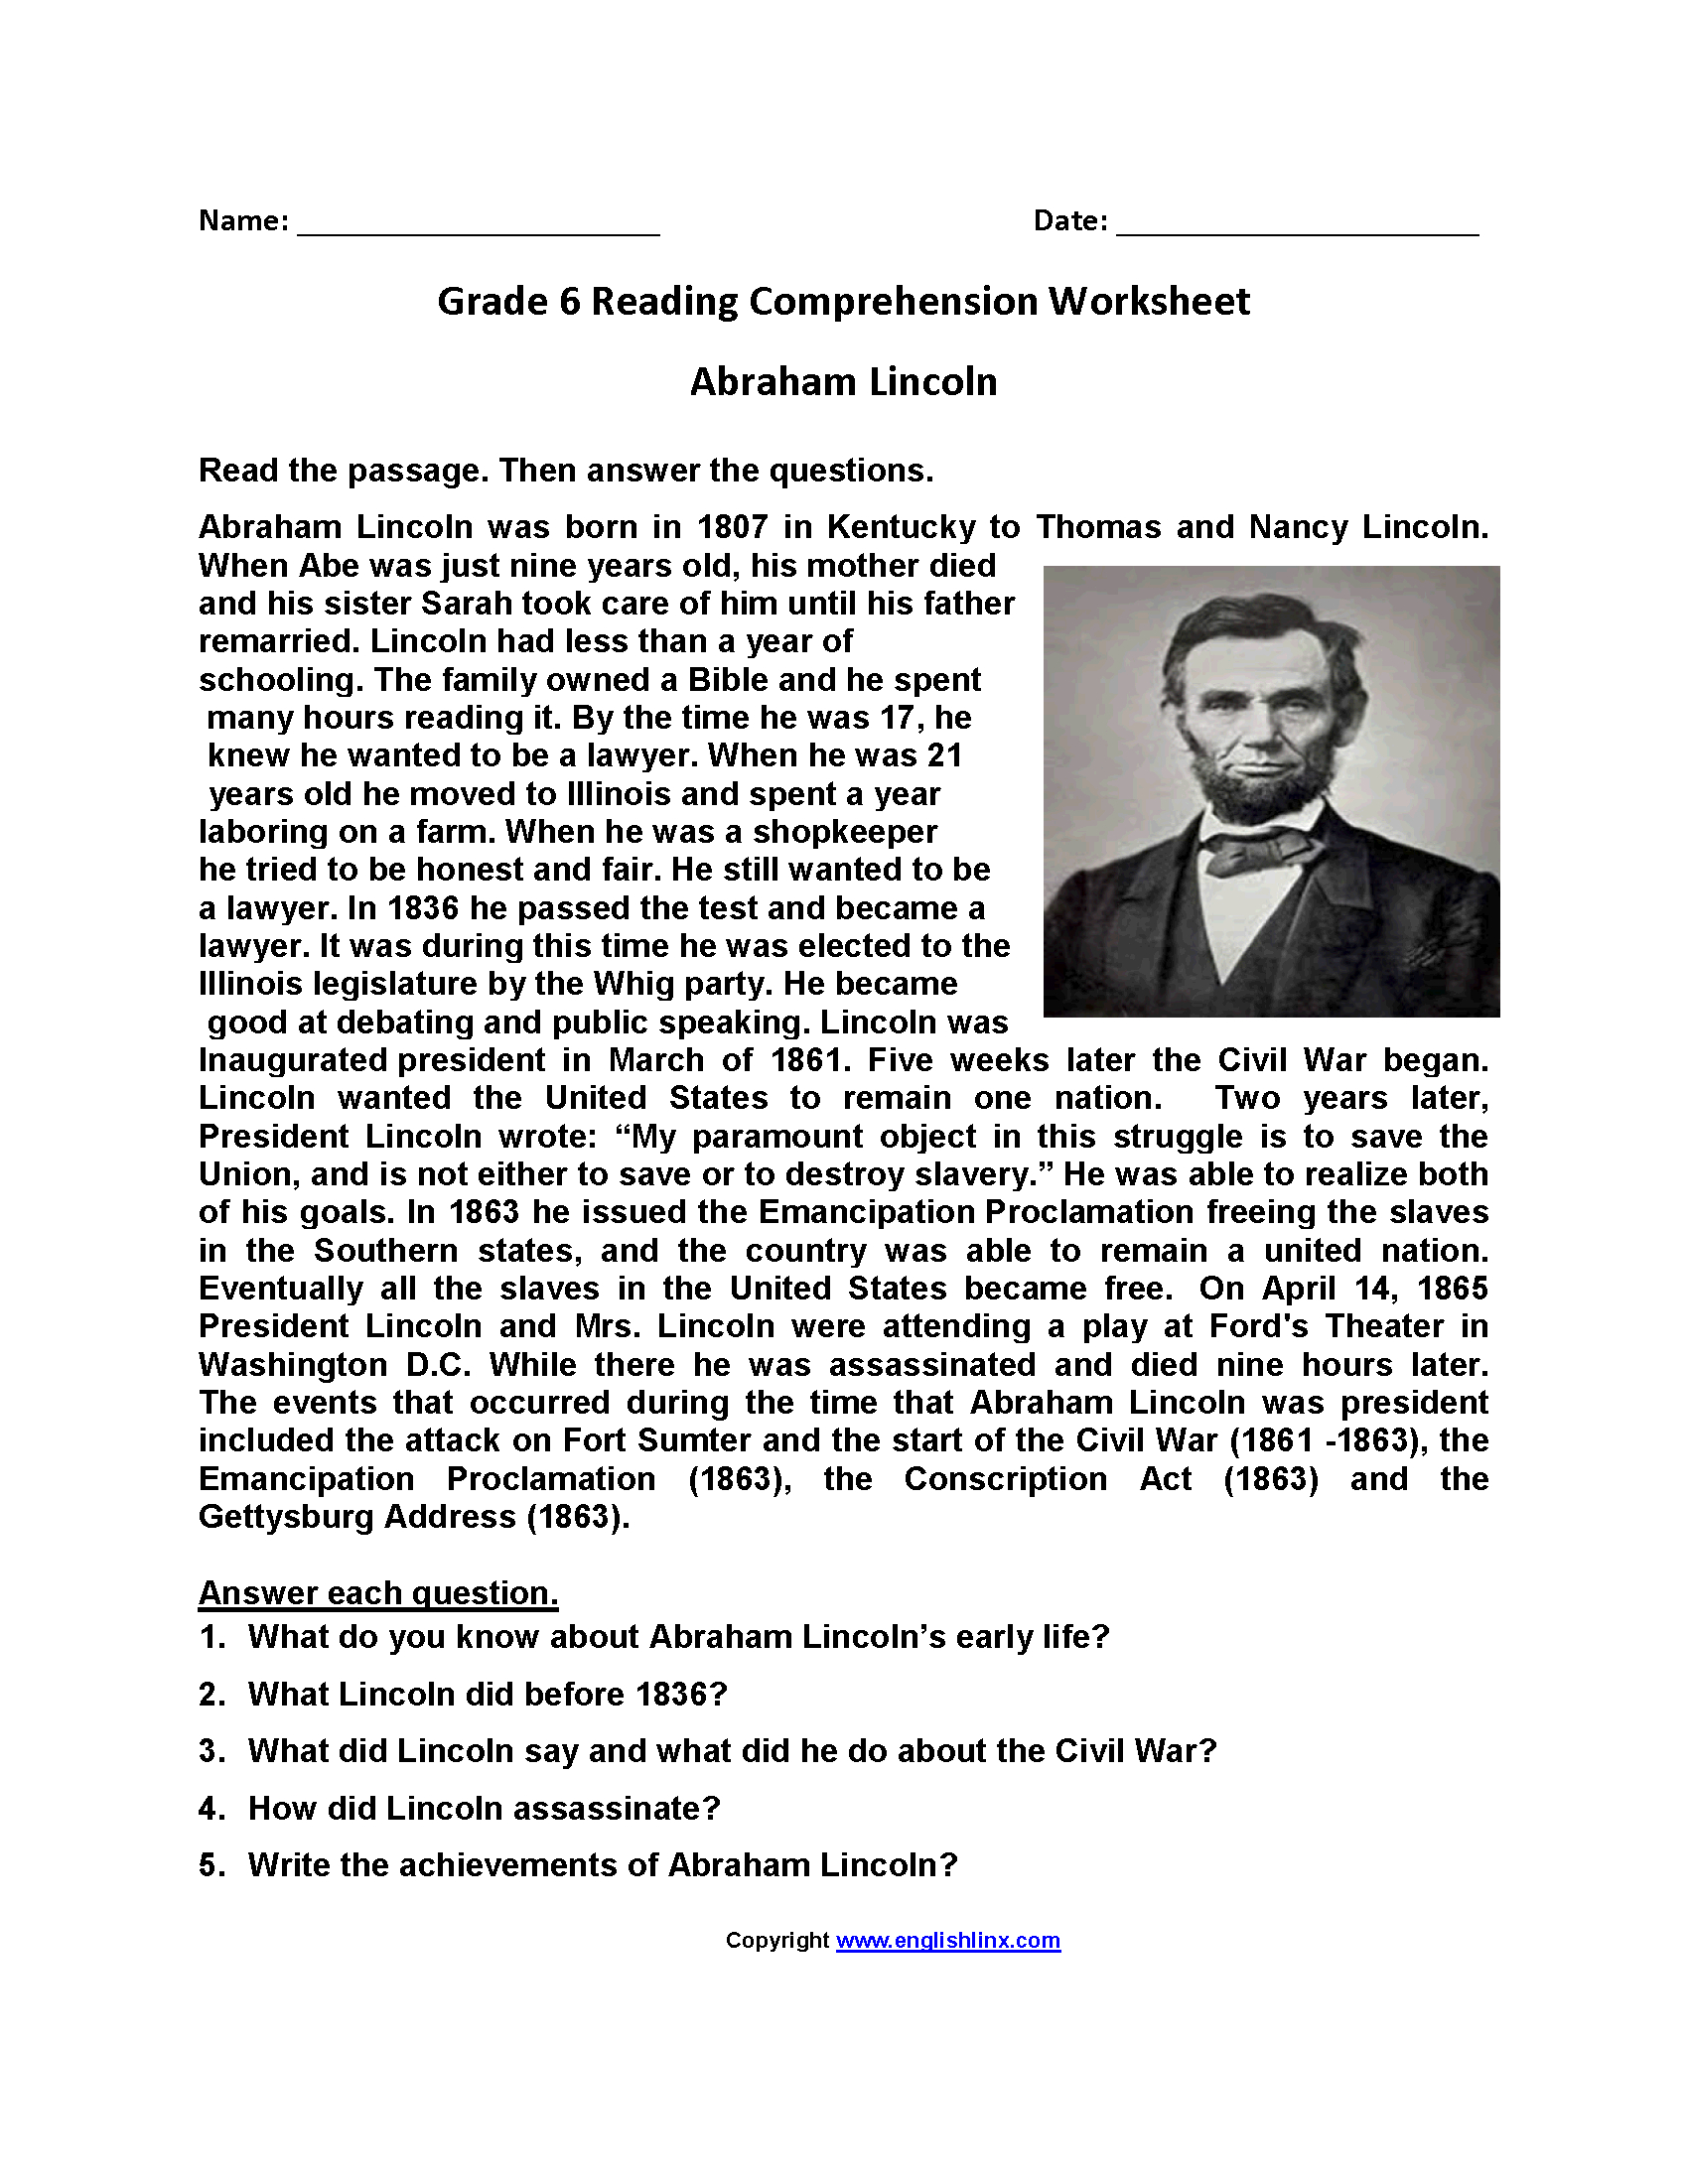 Reading Worksheets | Sixth Grade Reading Worksheets - Free Printable Comprehension Worksheets For Grade 5